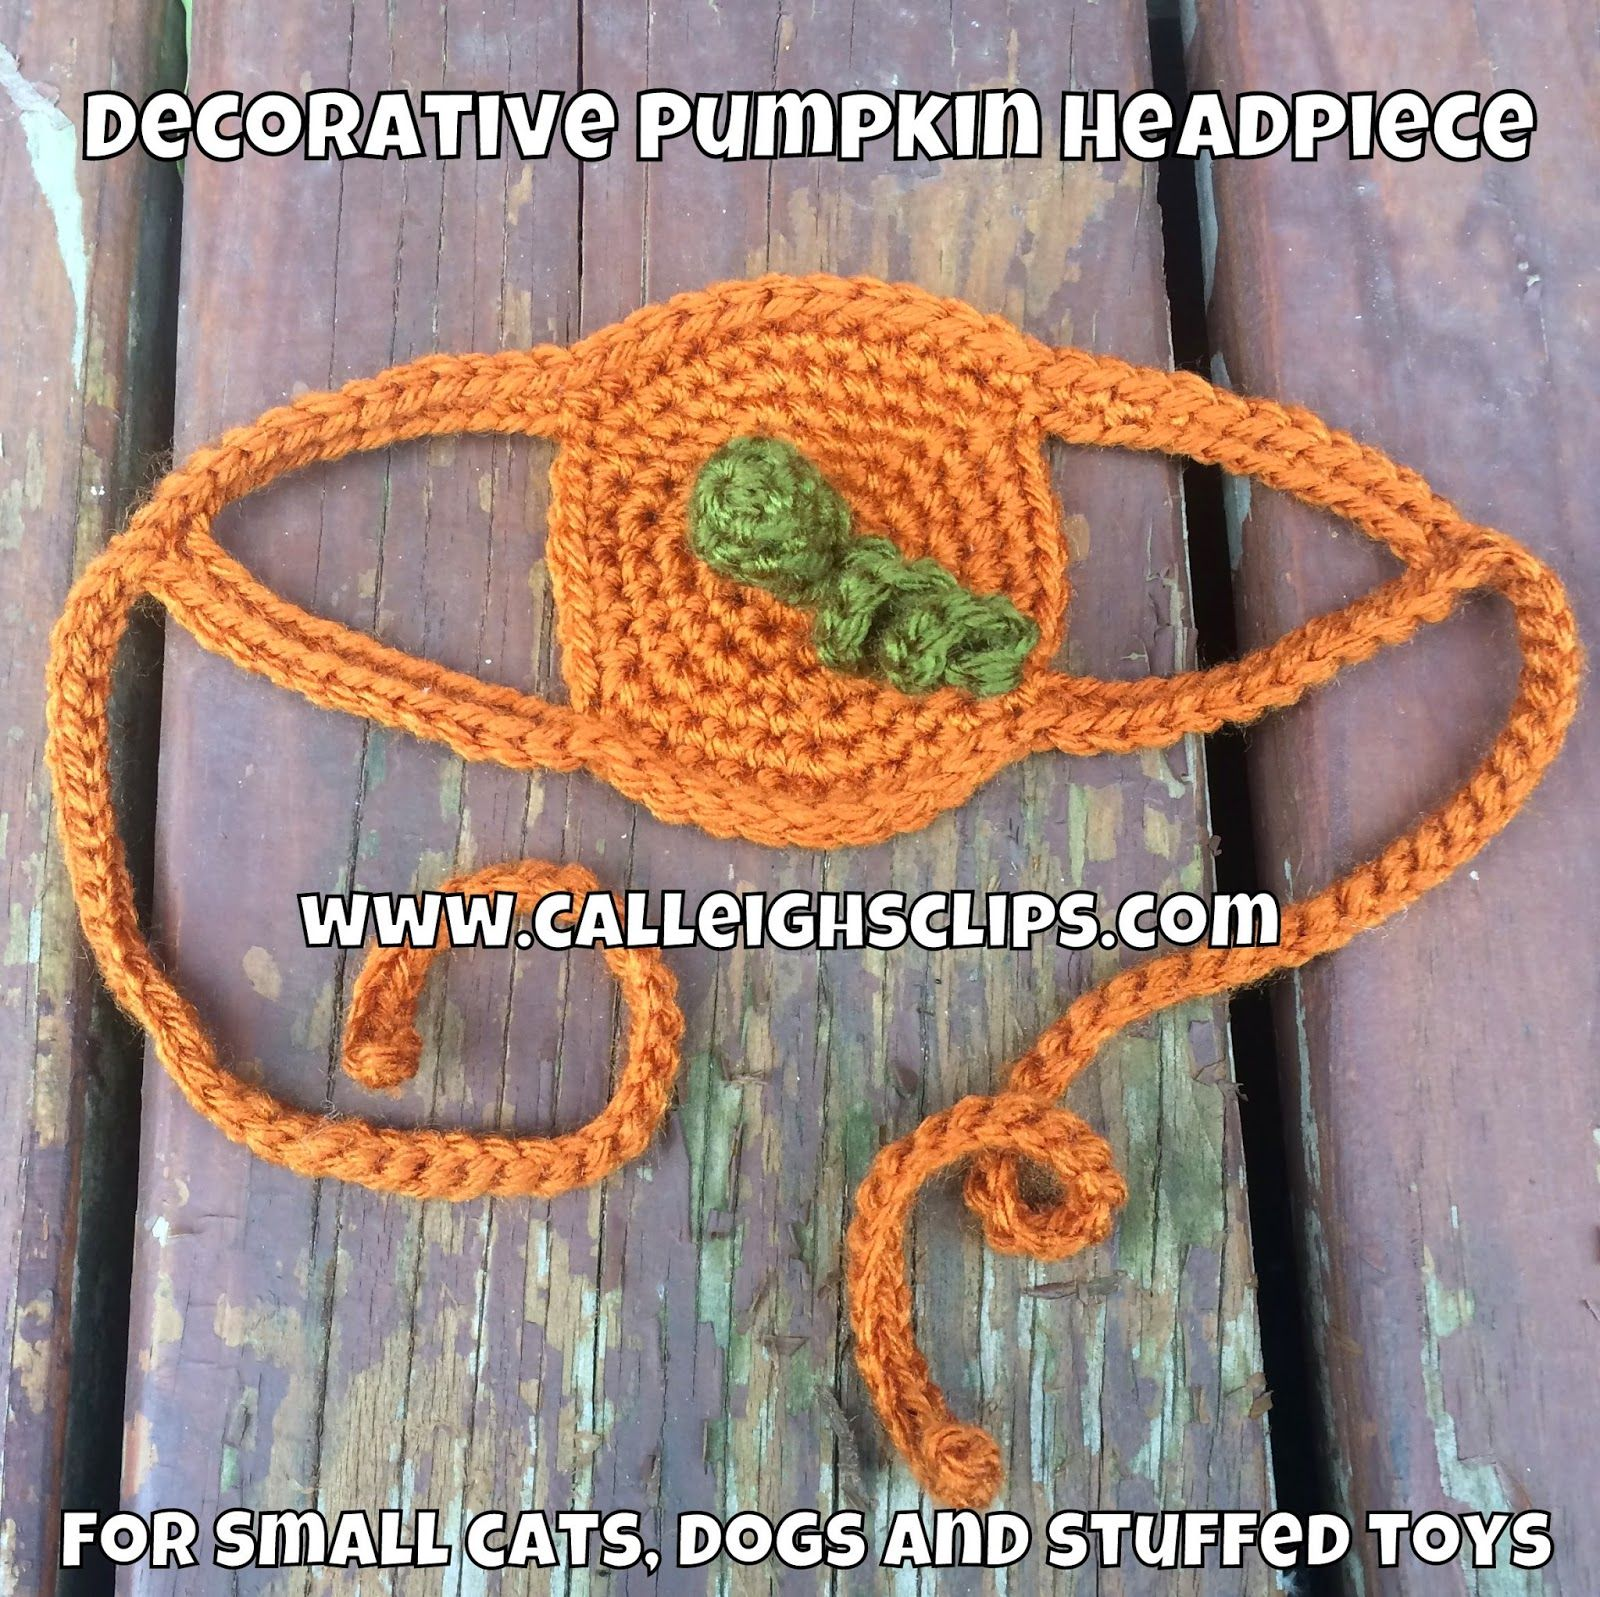 Calleighs clips crochet creations free crochet pattern calleighs clips crochet creations free crochet pattern decorative pumpkin headpiece for small cats bankloansurffo Images